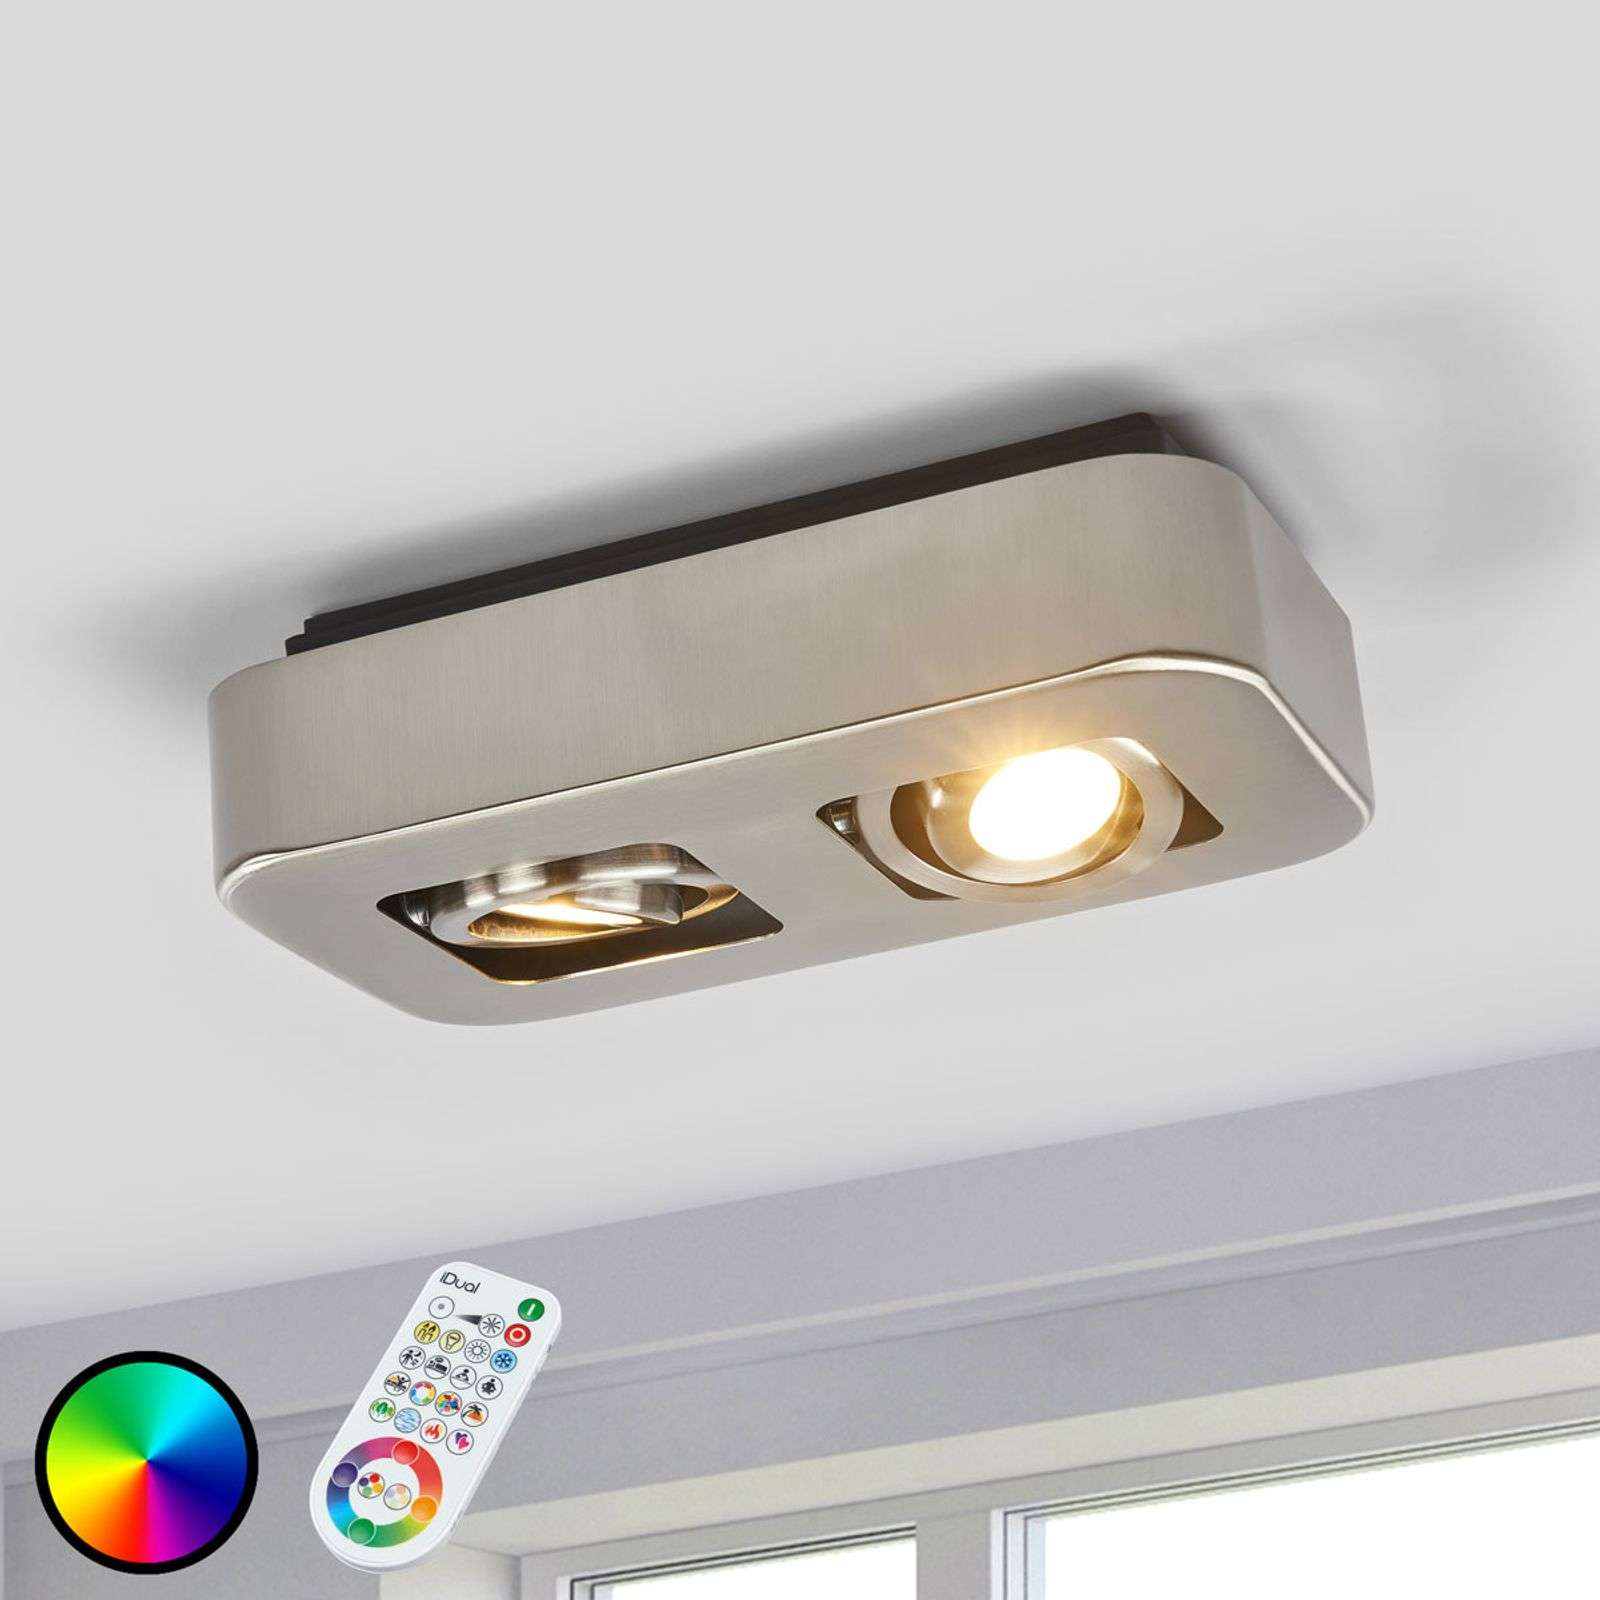 Plafonnier avec 2 spots LED IDual Krypton, nickel